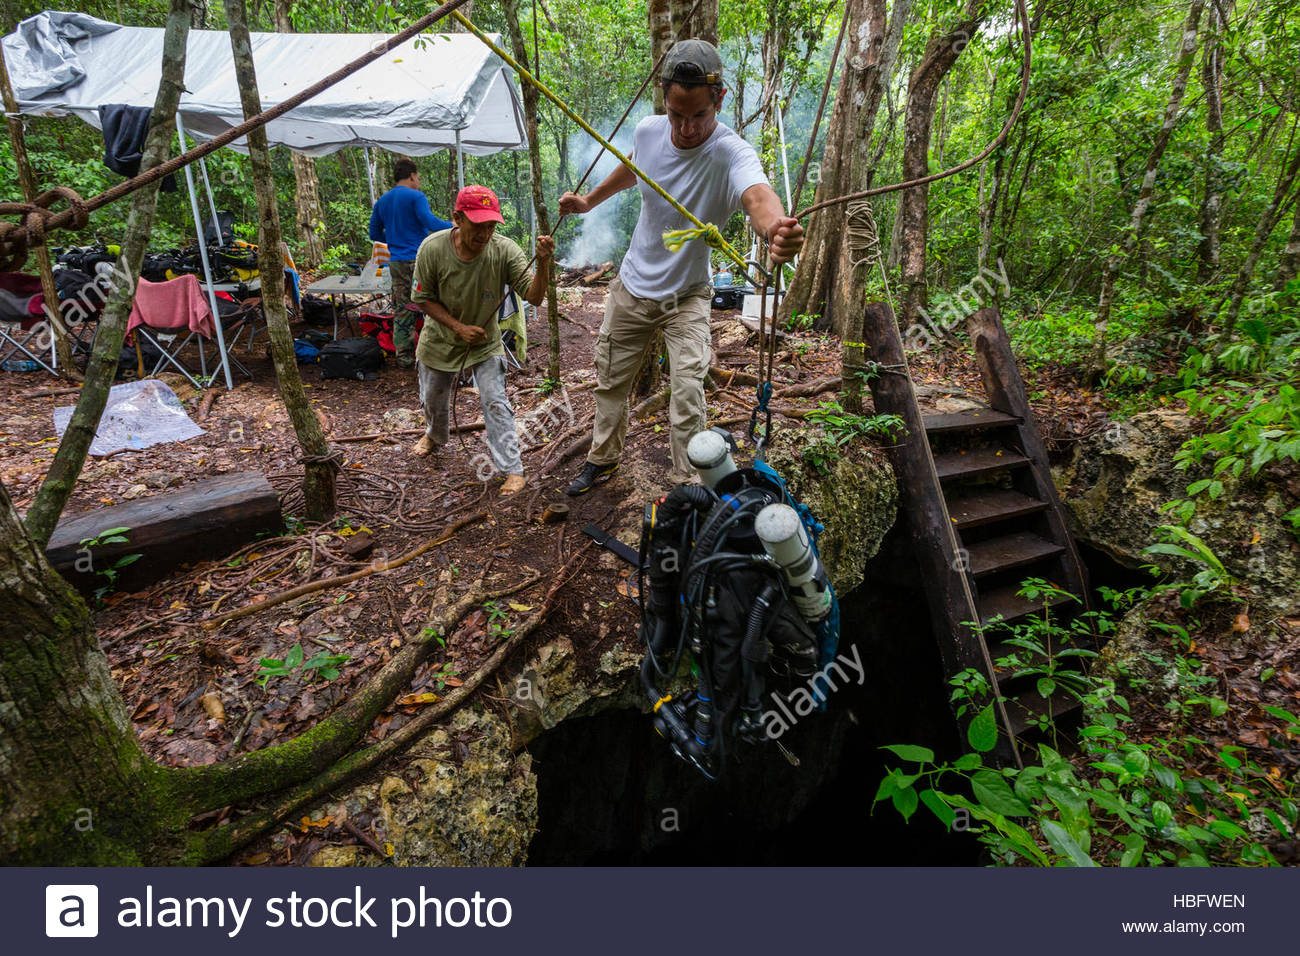 Rebreathers High Resolution Stock Photography And Images Alamy The forest is an open world survival horror game where you can craft, build and hunt in the fight for survival. alamy